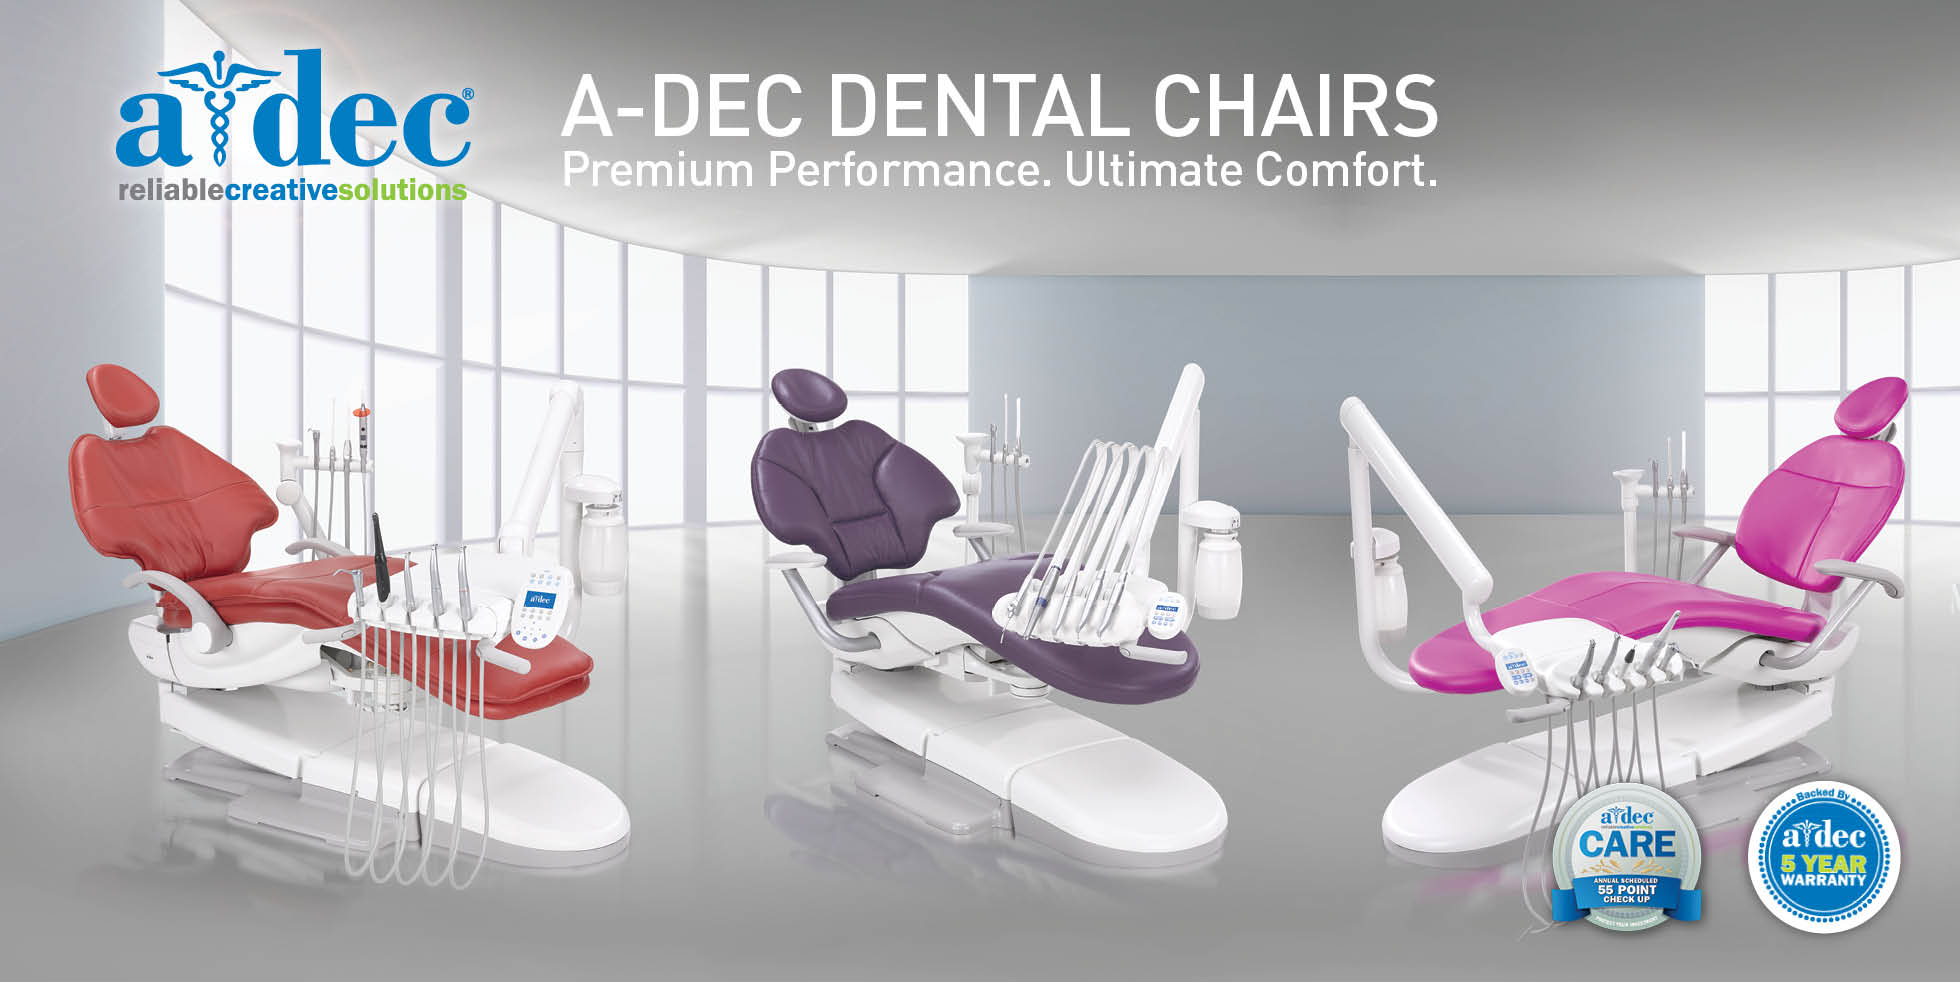 A-Dec dental chairs